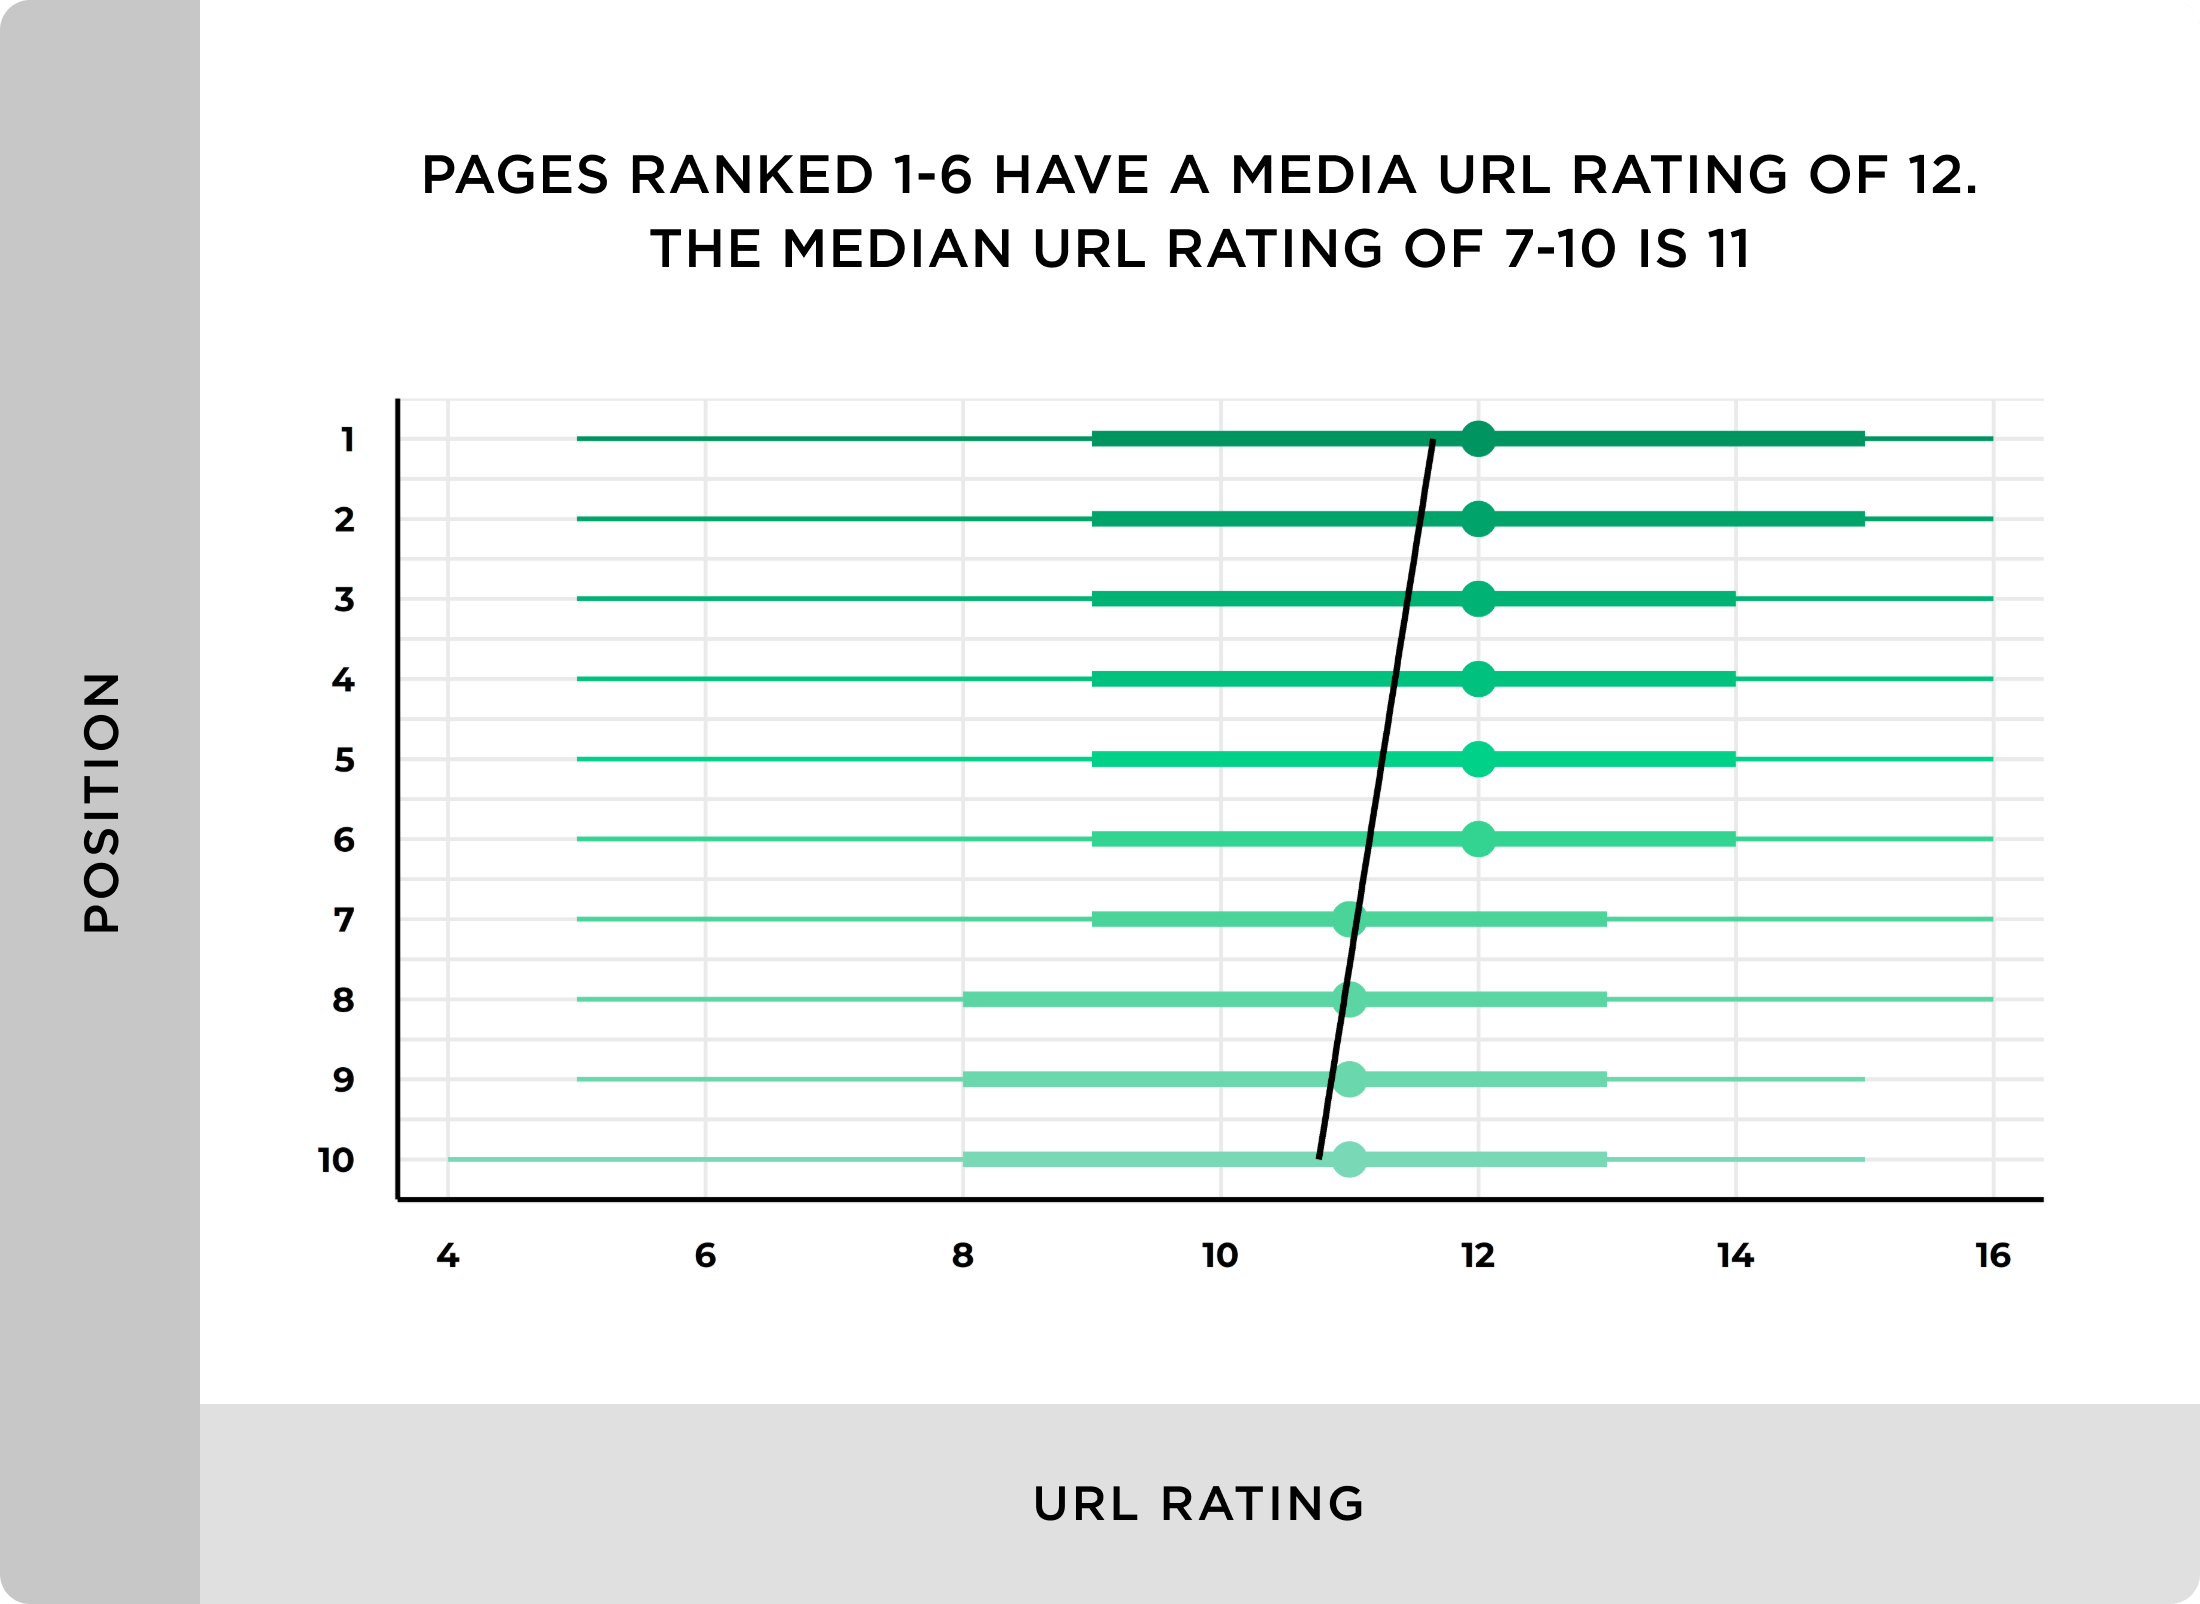 Pages ranked 1-6 have a media URL rating of 12 – The median URL rating of 7-10 is 11